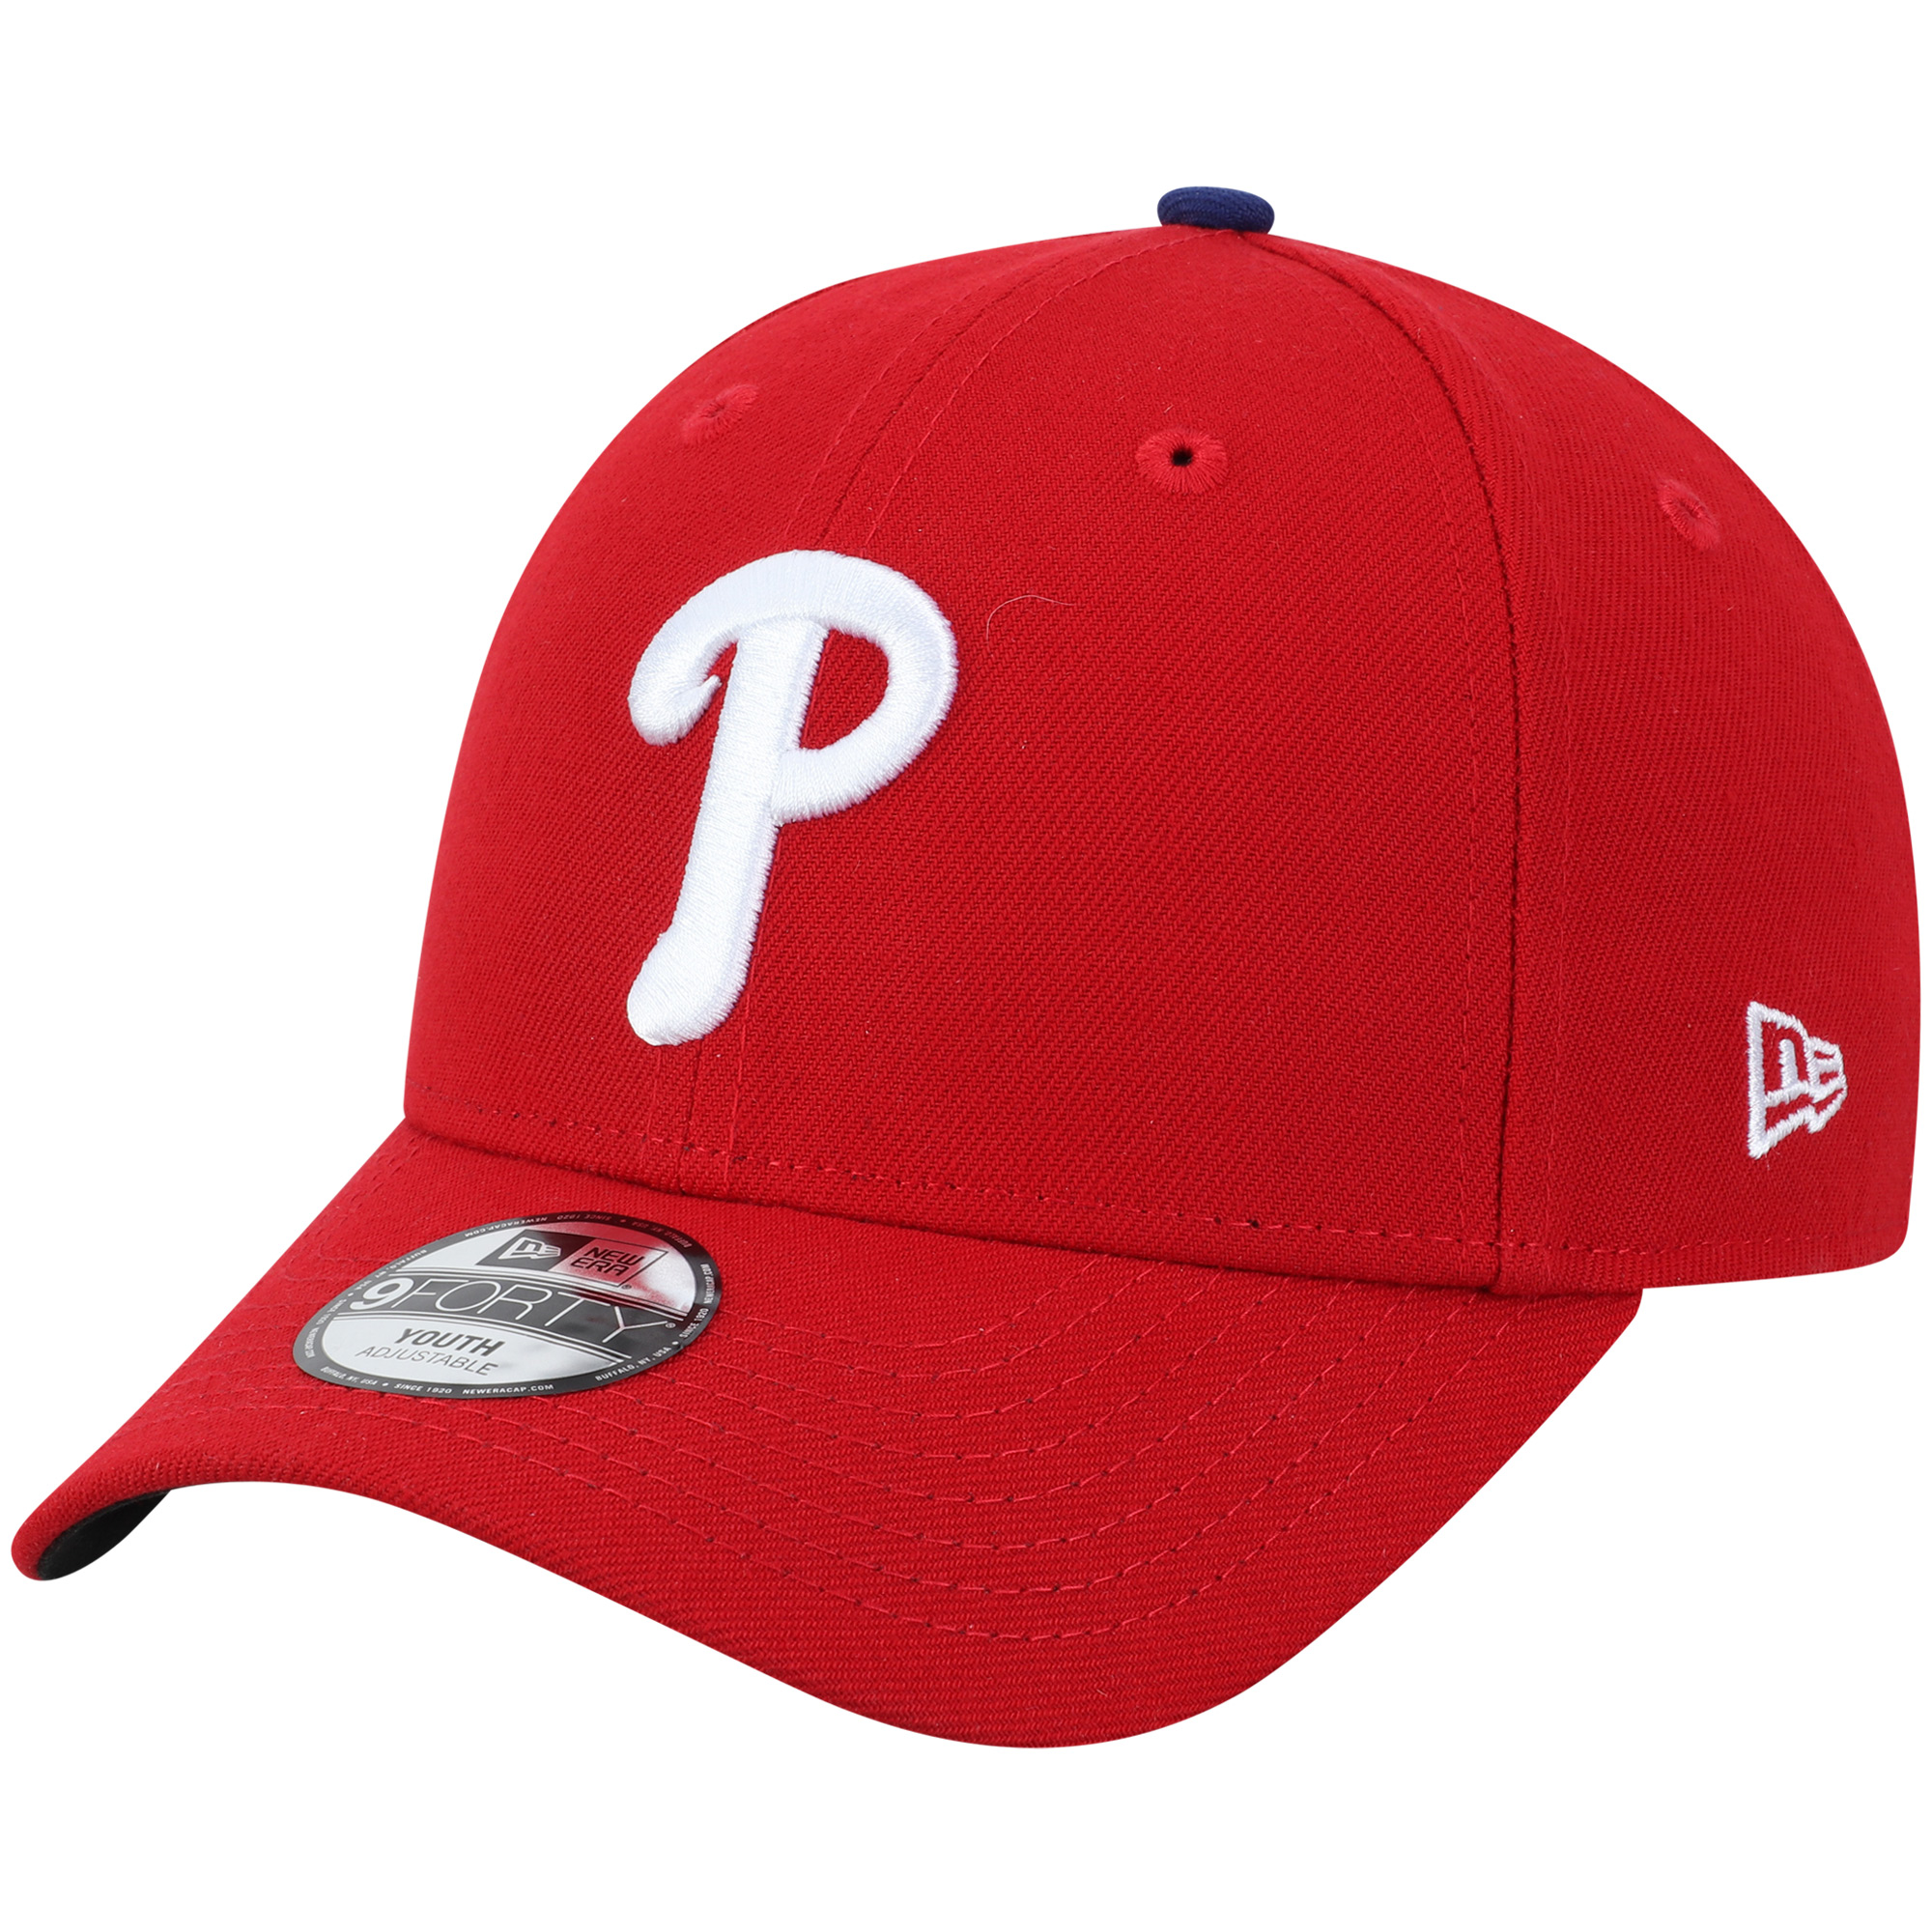 Philadelphia Phillies New Era Youth The League 9FORTY Adjustable Hat - Red - No Size